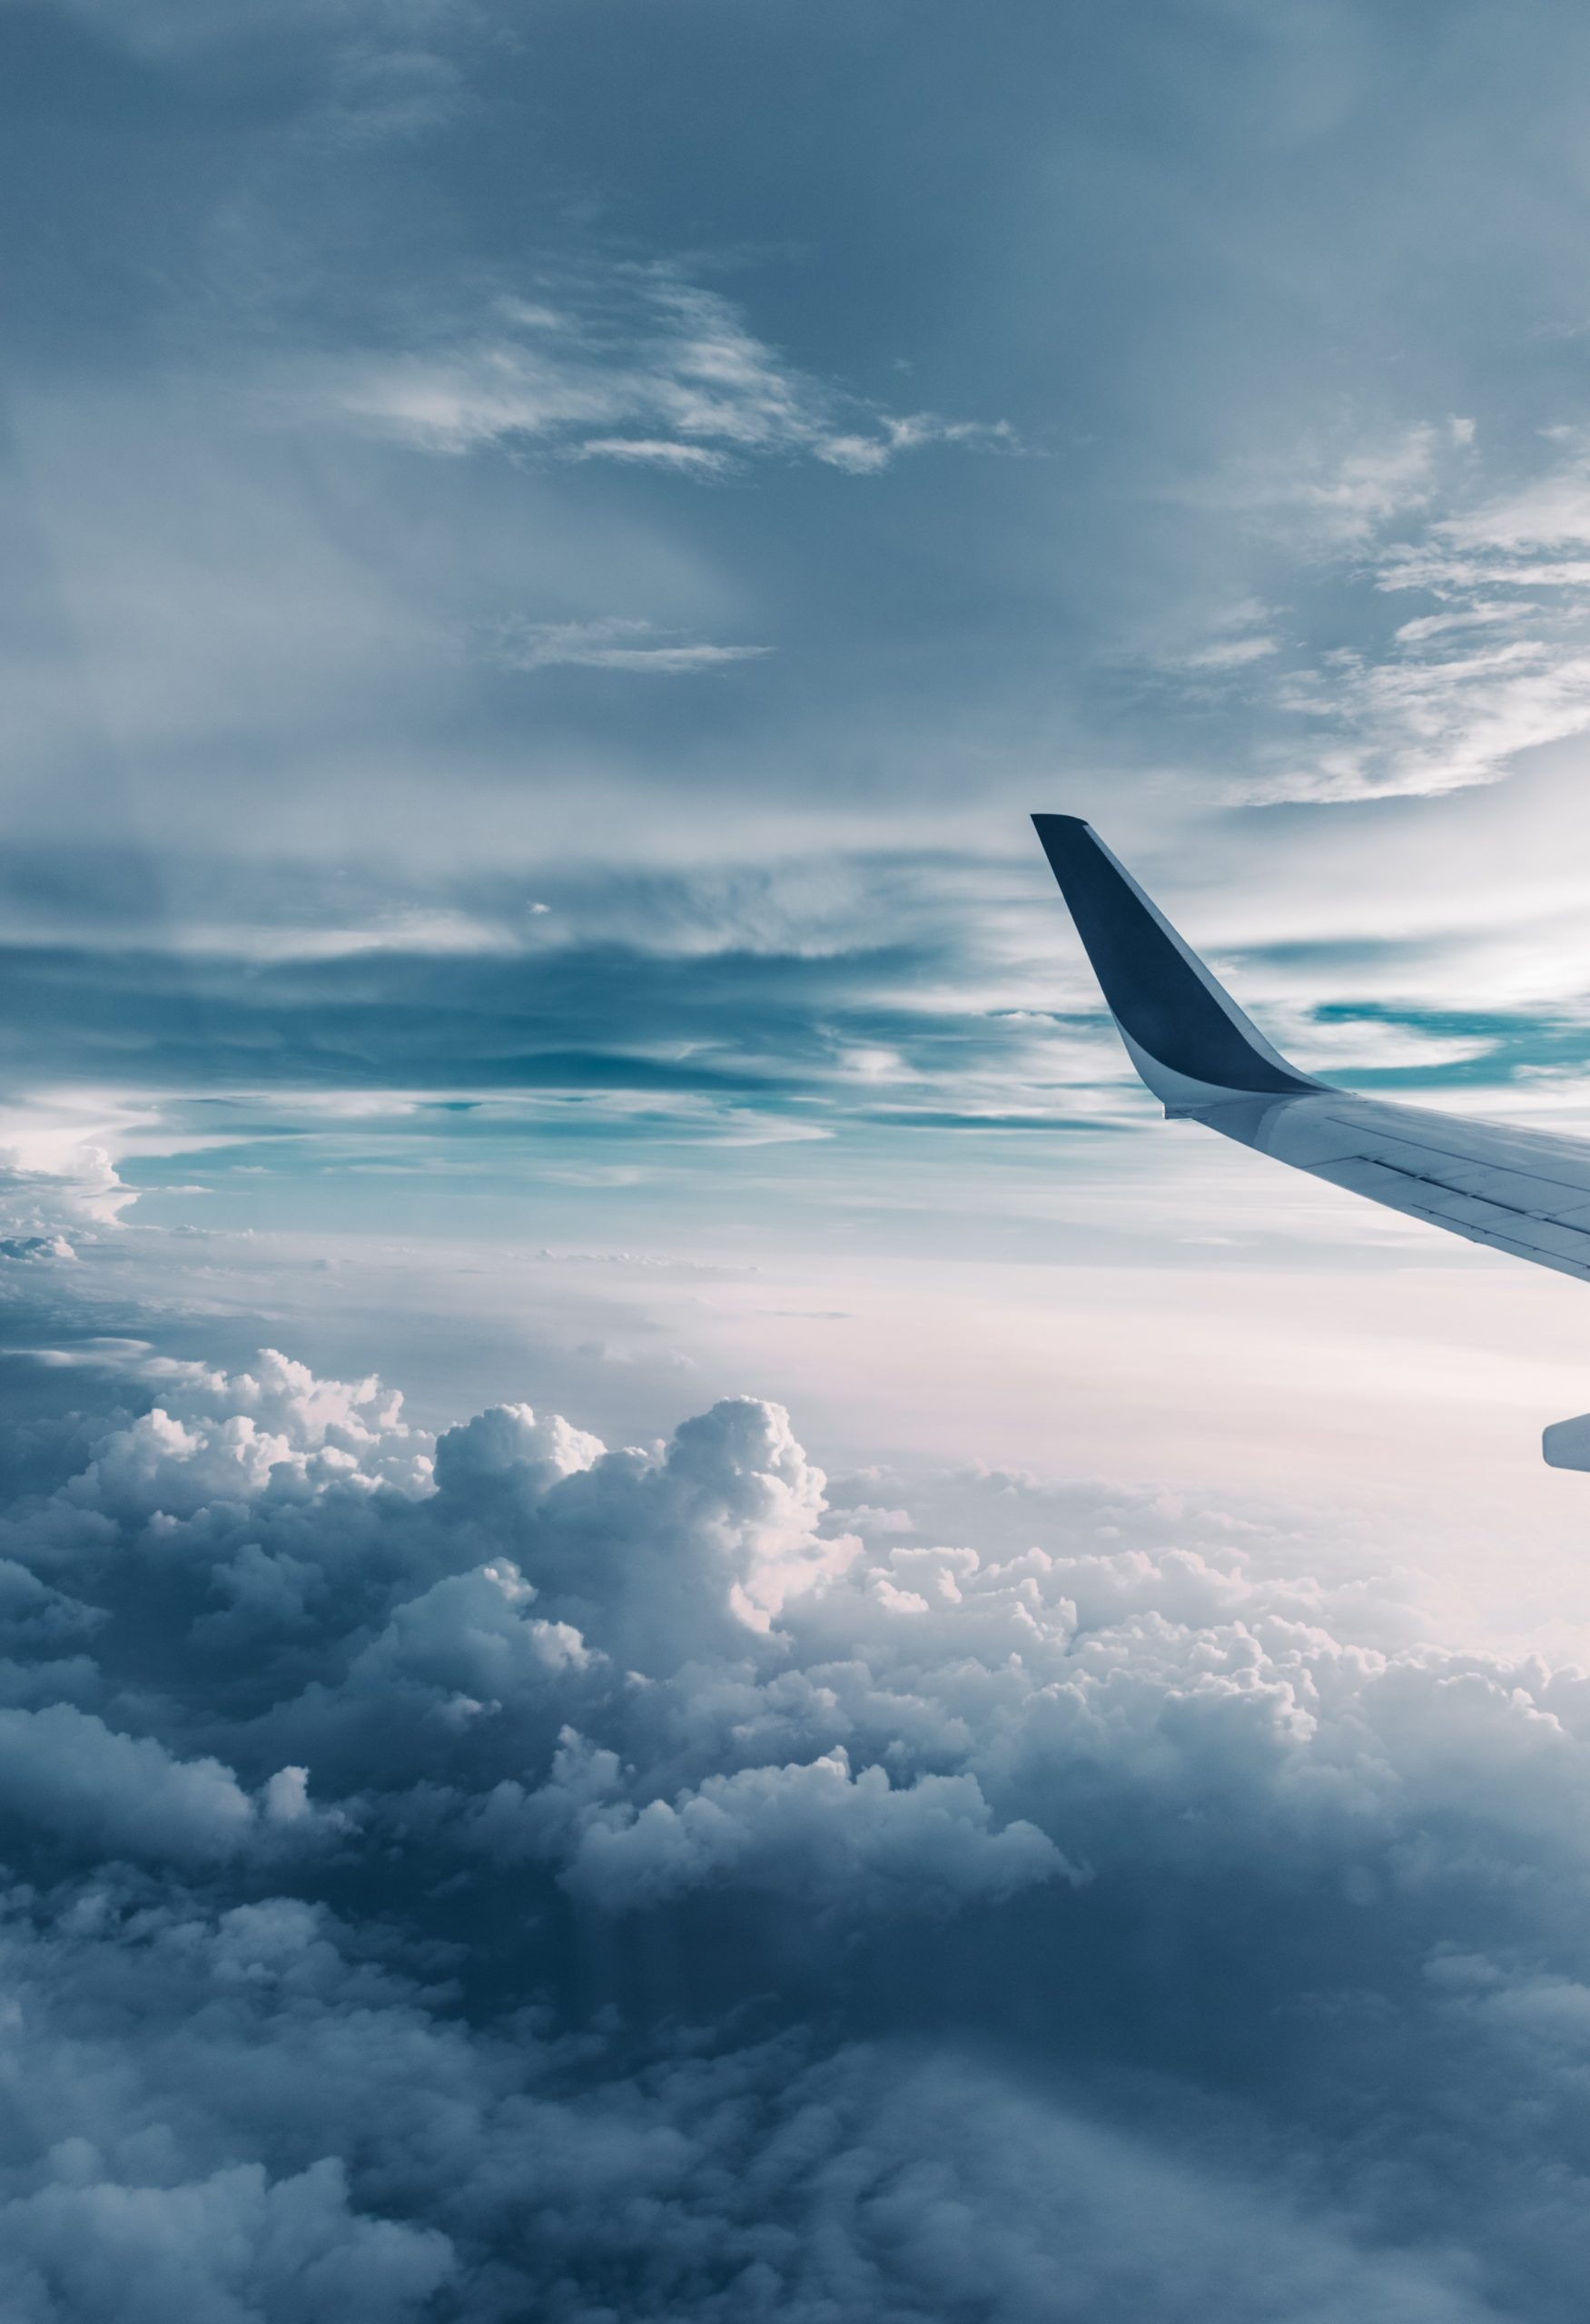 aviation Leading top Law Firm in India expertise in Corporate & Commercial, Dispute Resolution, Arbitration, Real Estate, Media, Technology and Intellectual Property Affiliations